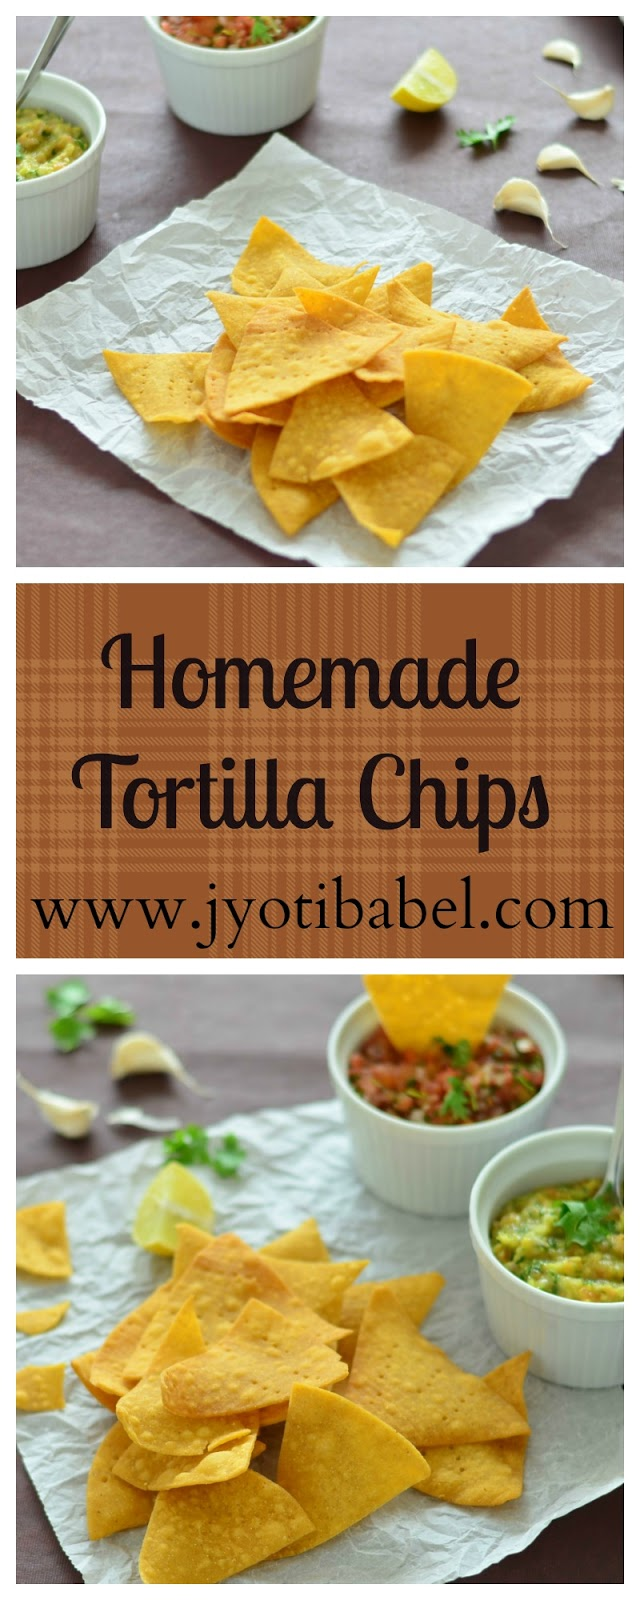 Tortilla Chips is one of the staple dishes in Mexican cuisine. Here is an easy recipe to make tortilla chips using maize flour. www.jyotibabel.com